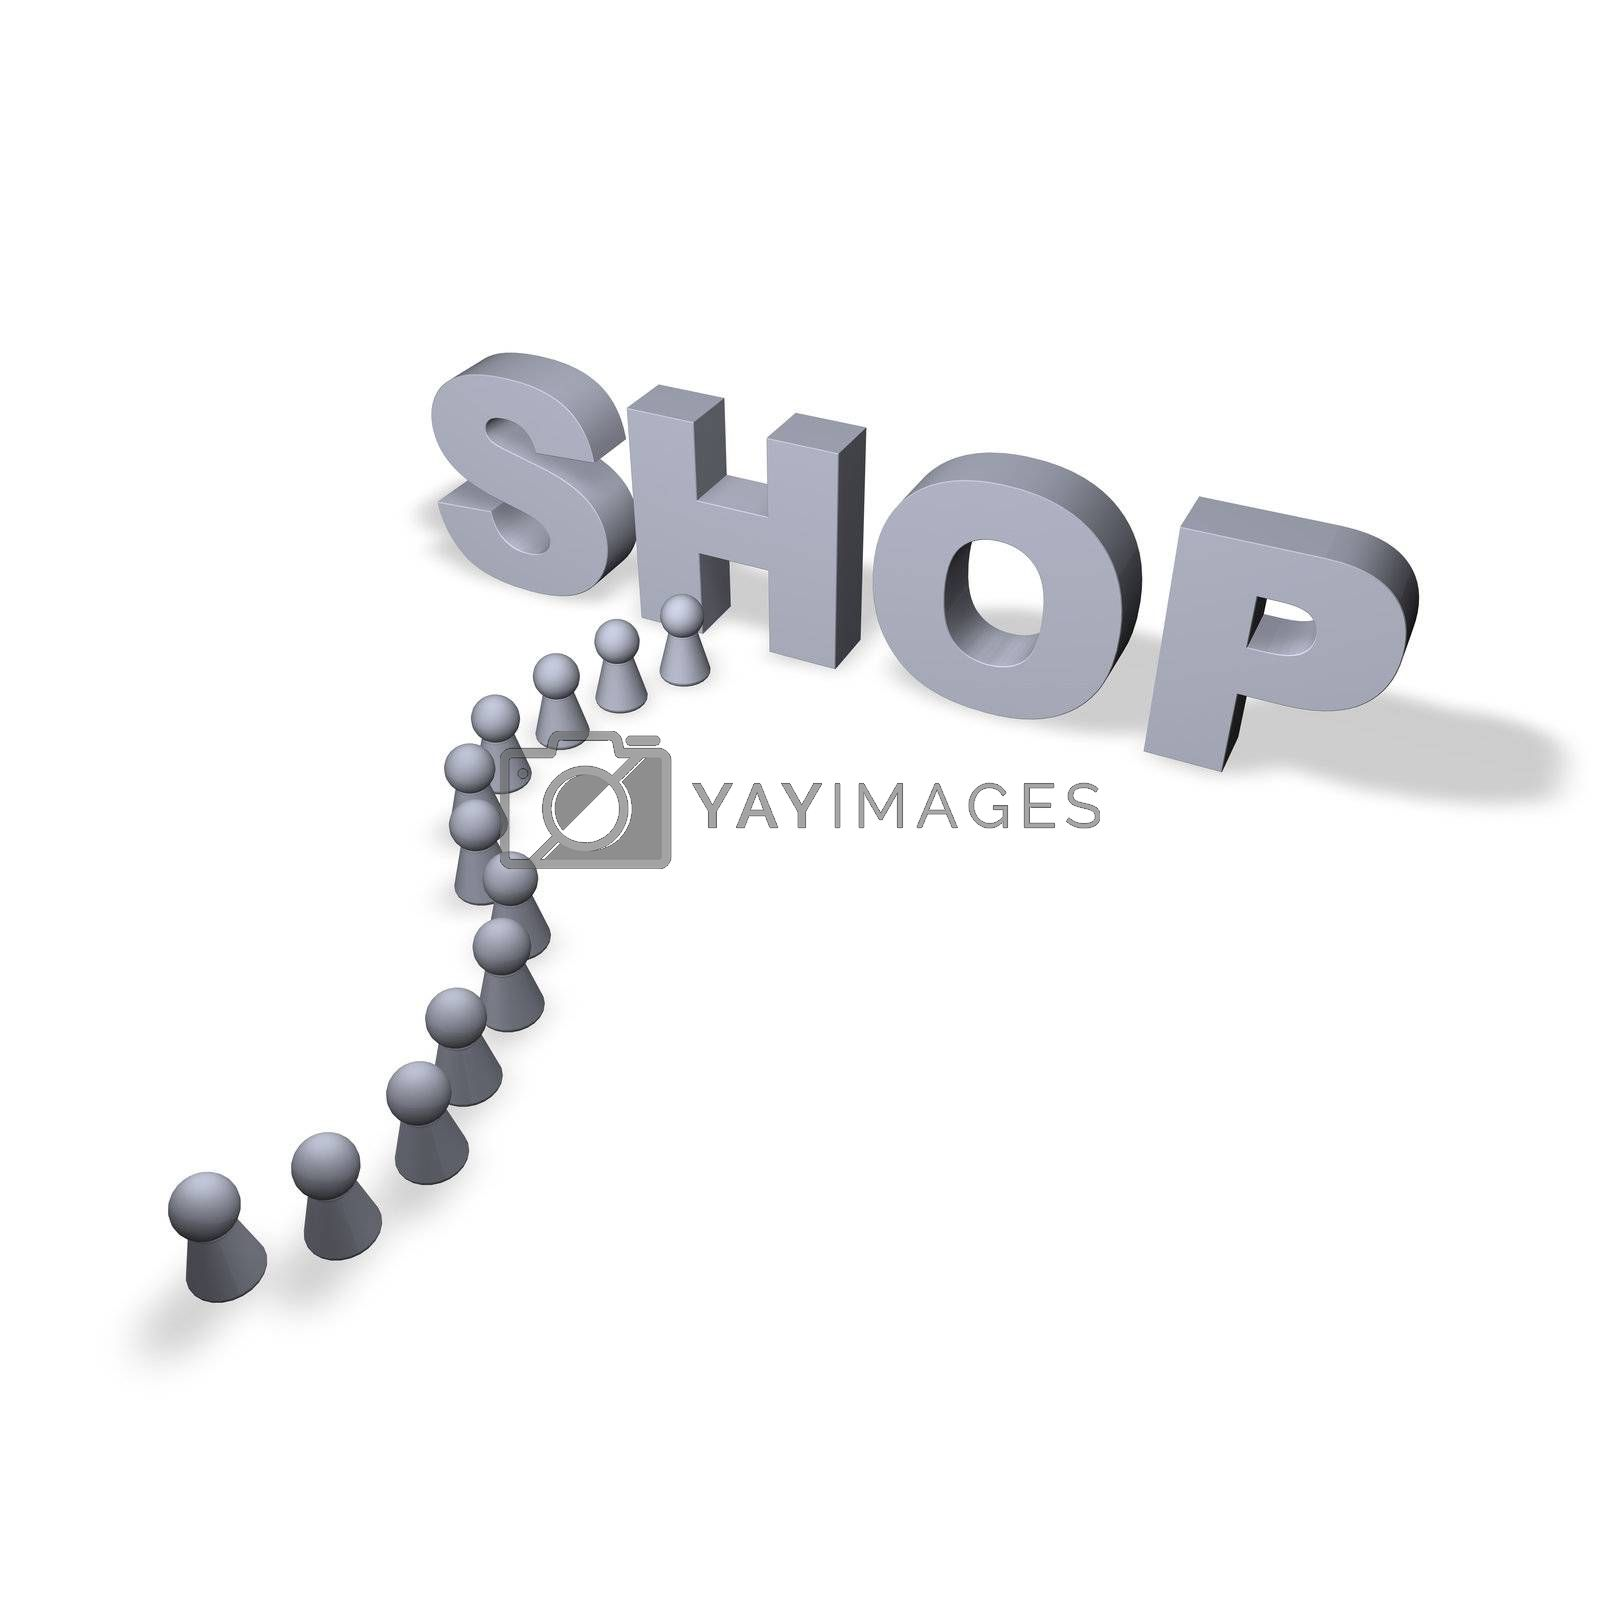 shop text in 3d and play figures